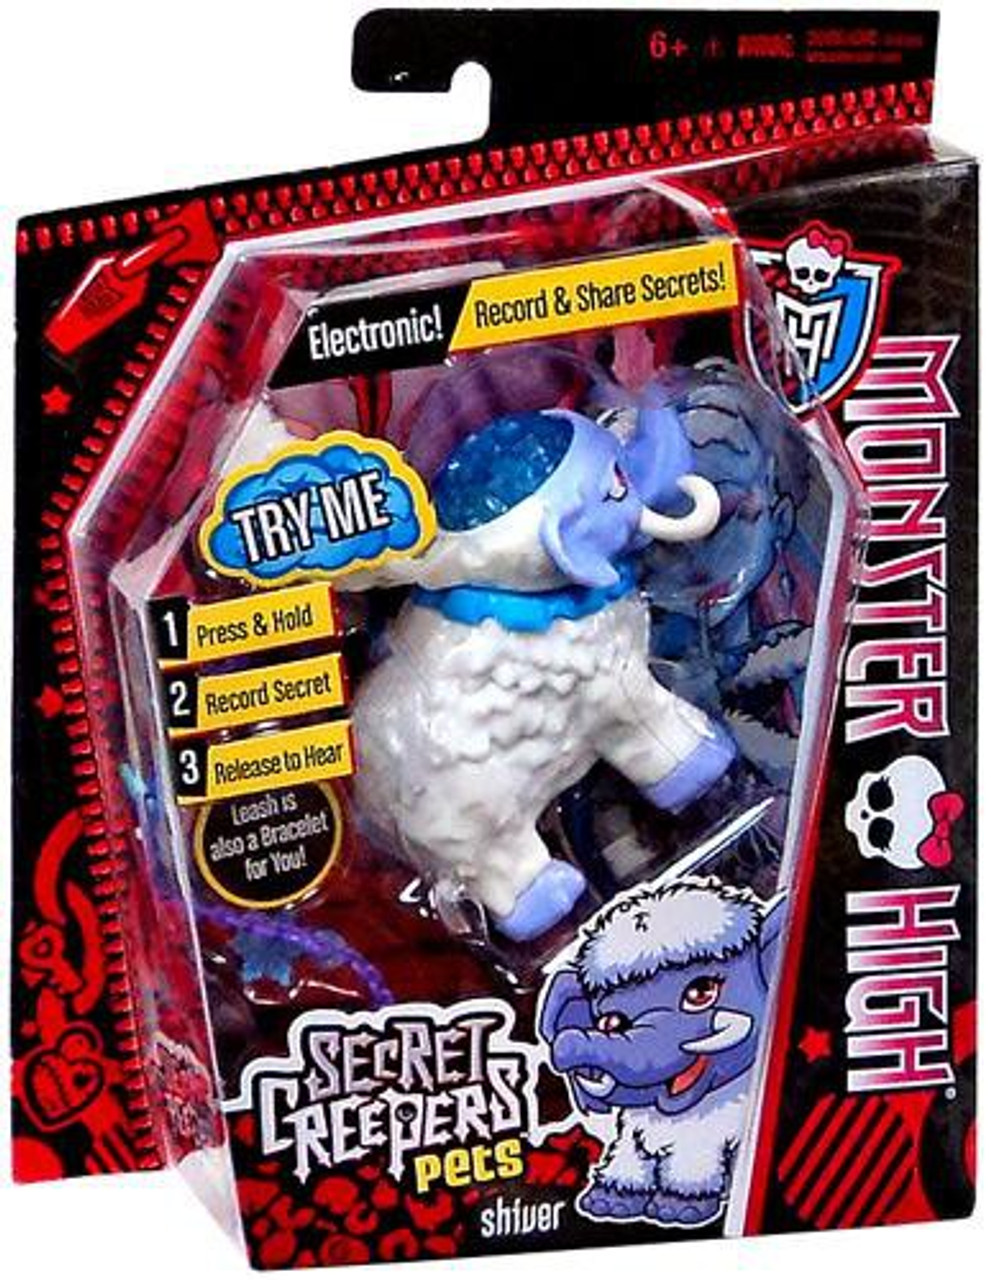 Monster High Secret Creepers Critters Shiver Figure